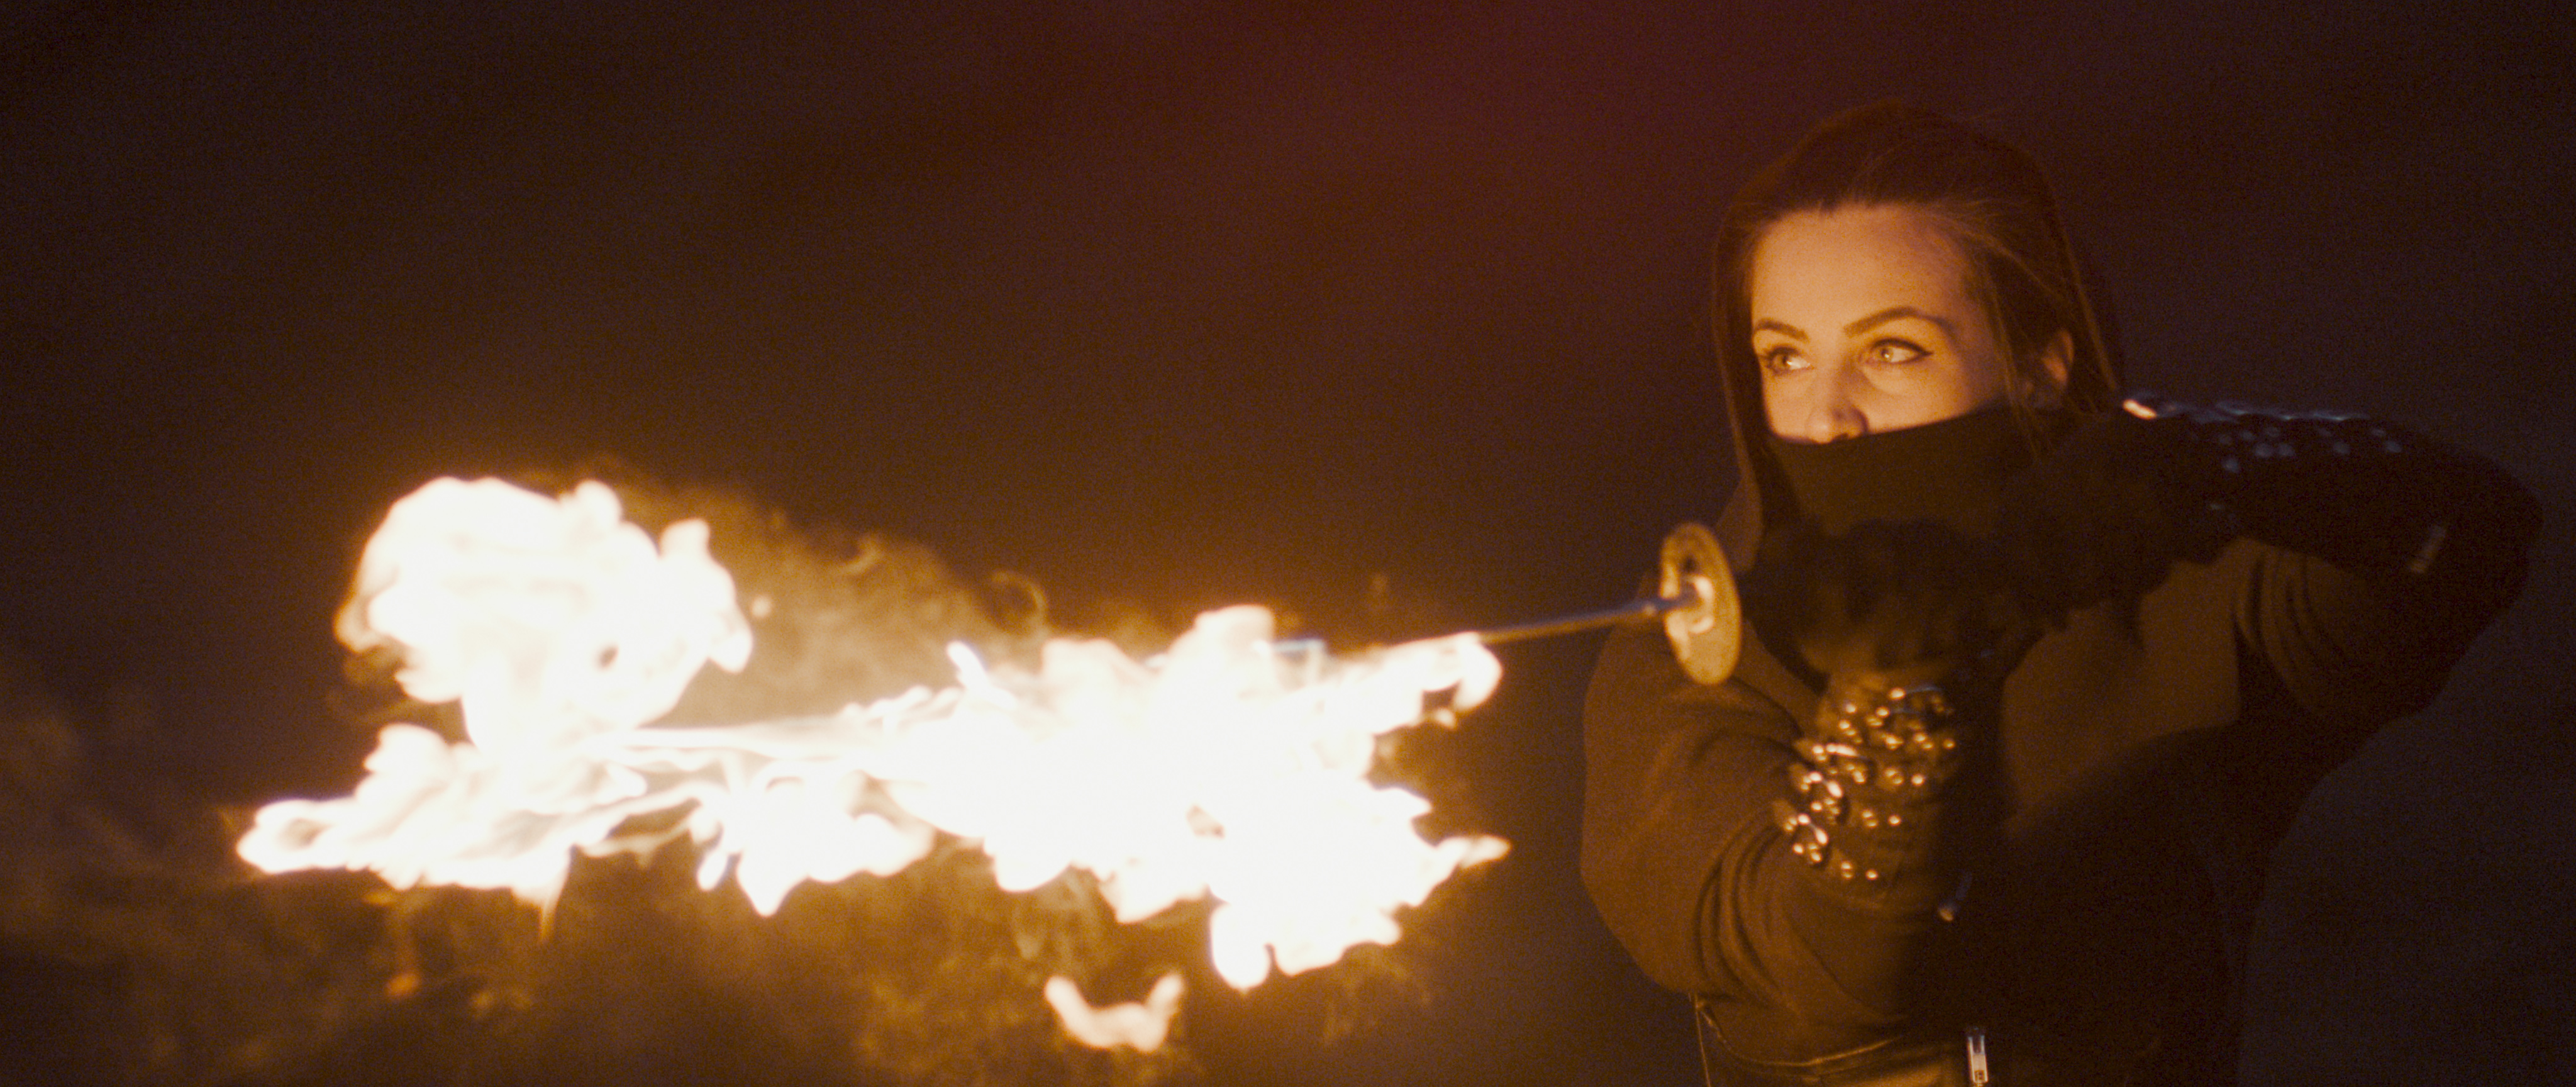 Screen Grab from Marnik feat. Rookies - Burn (official videoclip)